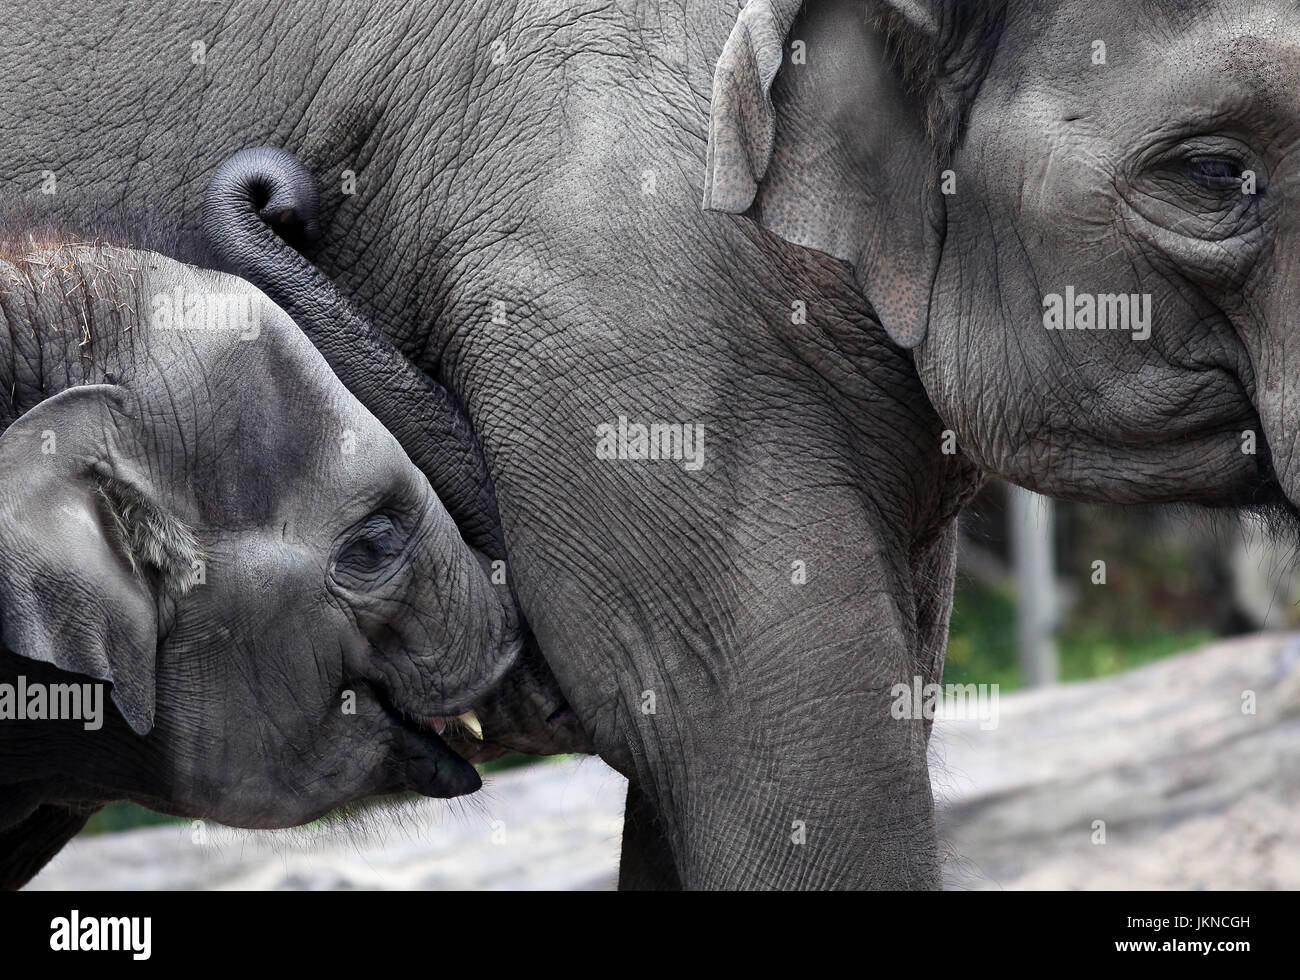 Baby elephant suckling milk from its mother - Stock Image